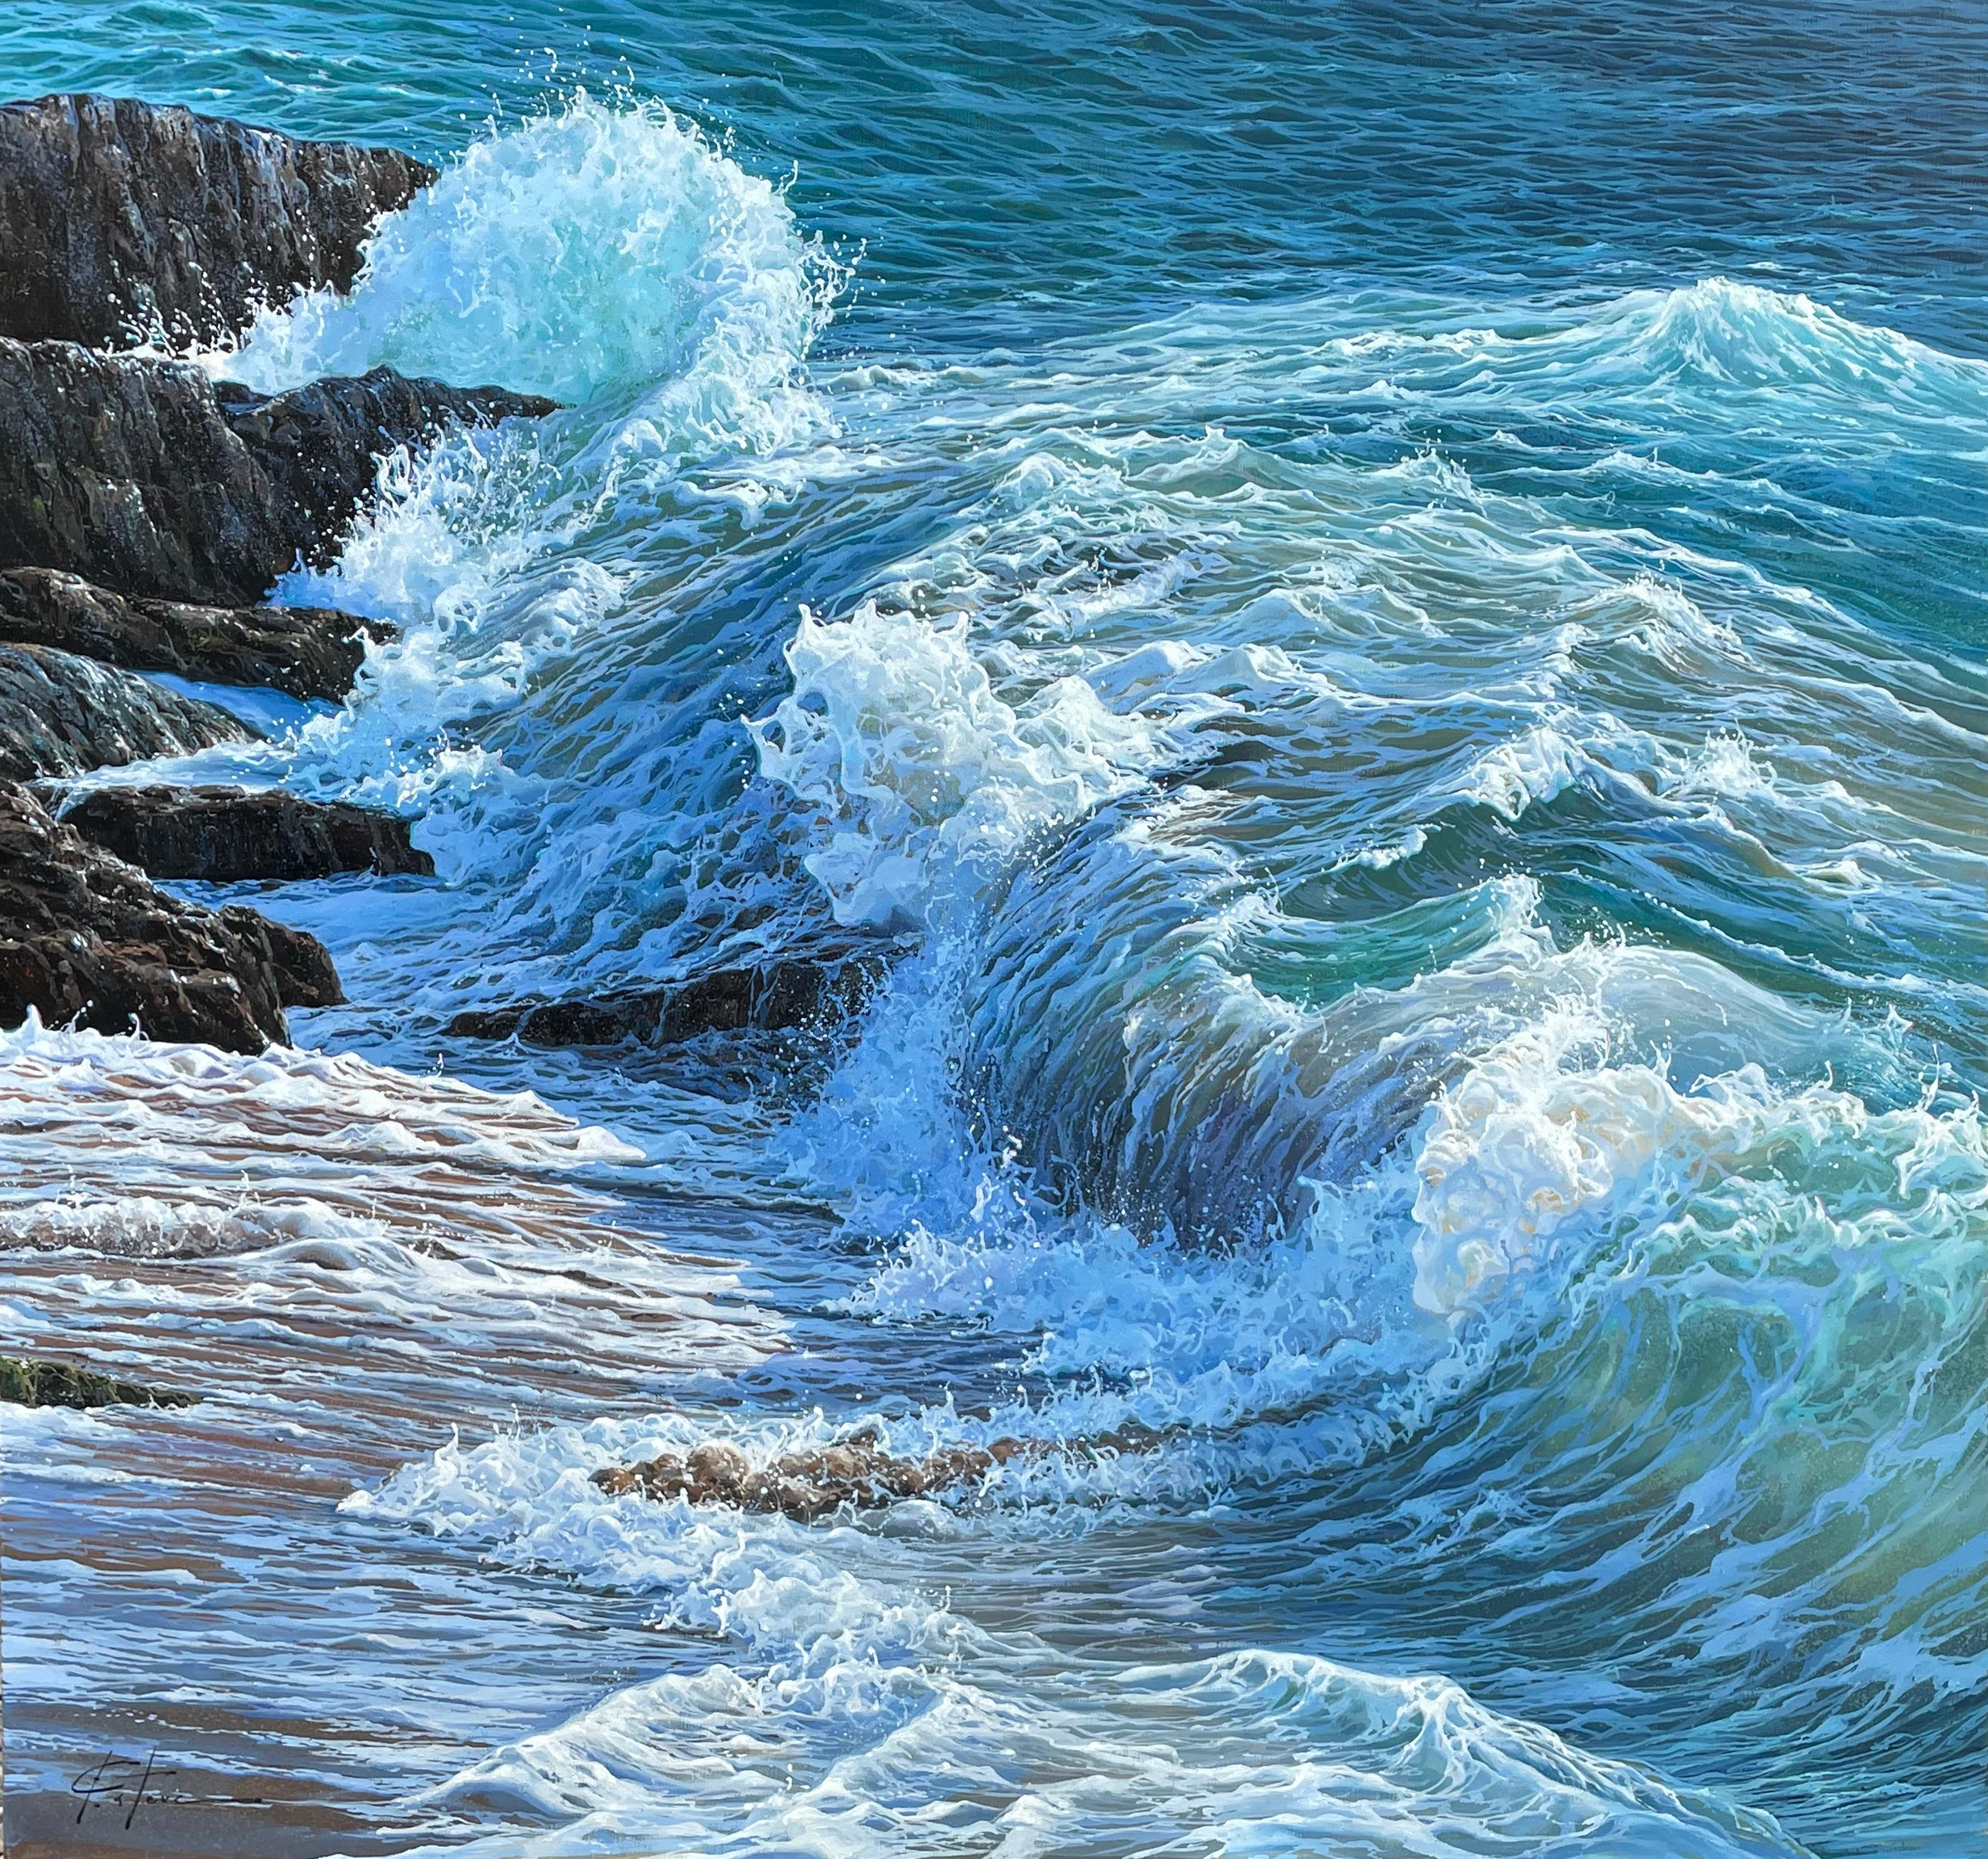 'Translucent Waters' Photorealist Contemporary seascape, wave painting, blue